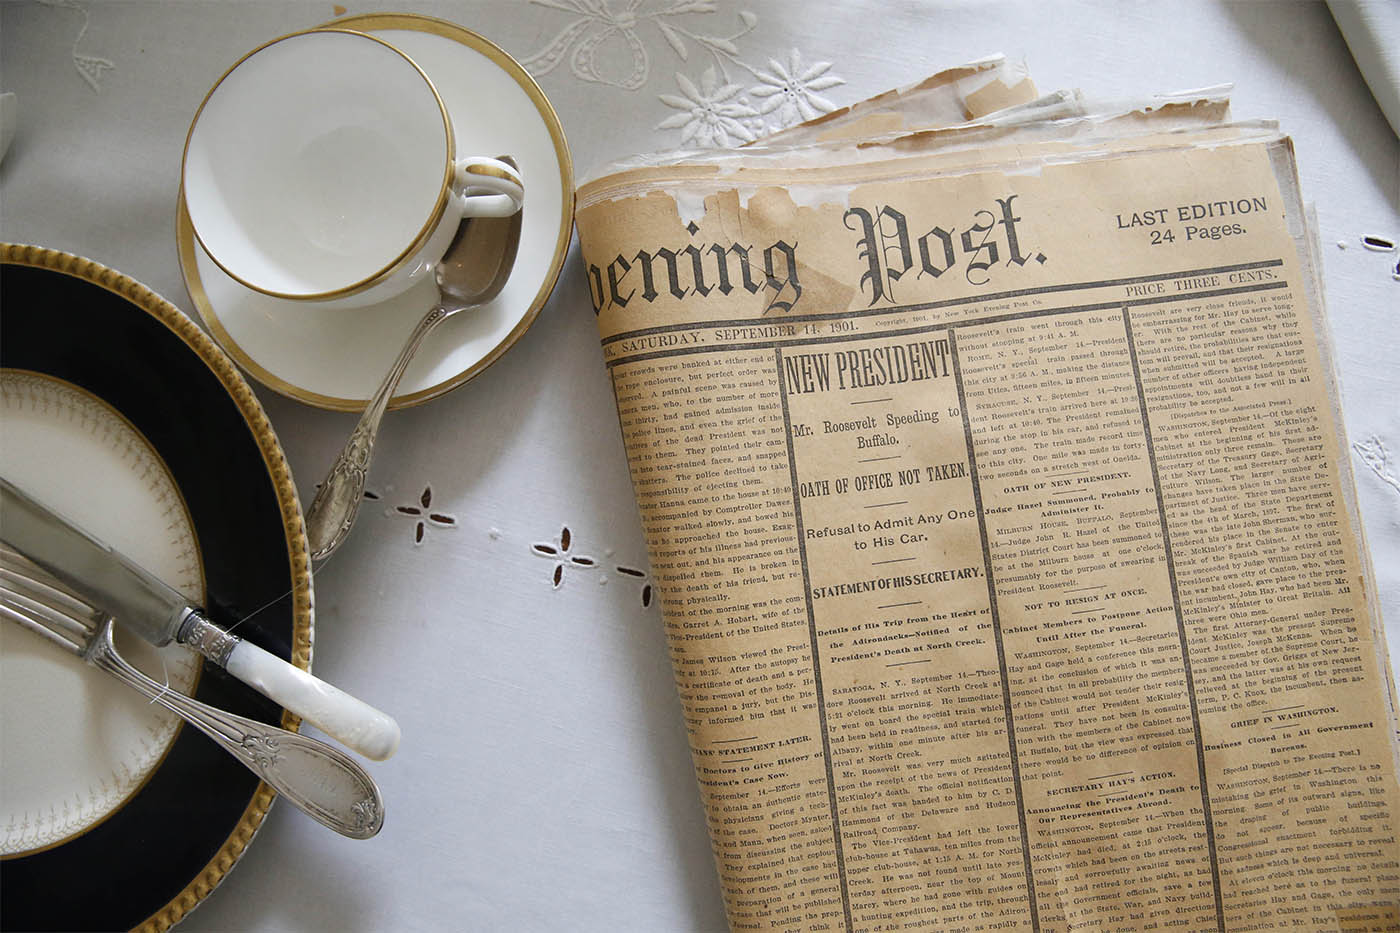 Pictures, The display in the dining room of the Wilcox Mansion includes a copy of the the Evening Post from Sept. 14, 1901 featuring news articles about President Theodore Roosevelt's inauguration, Wednesday, Sept. 7, 2016. (Derek Gee/Buffalo News)